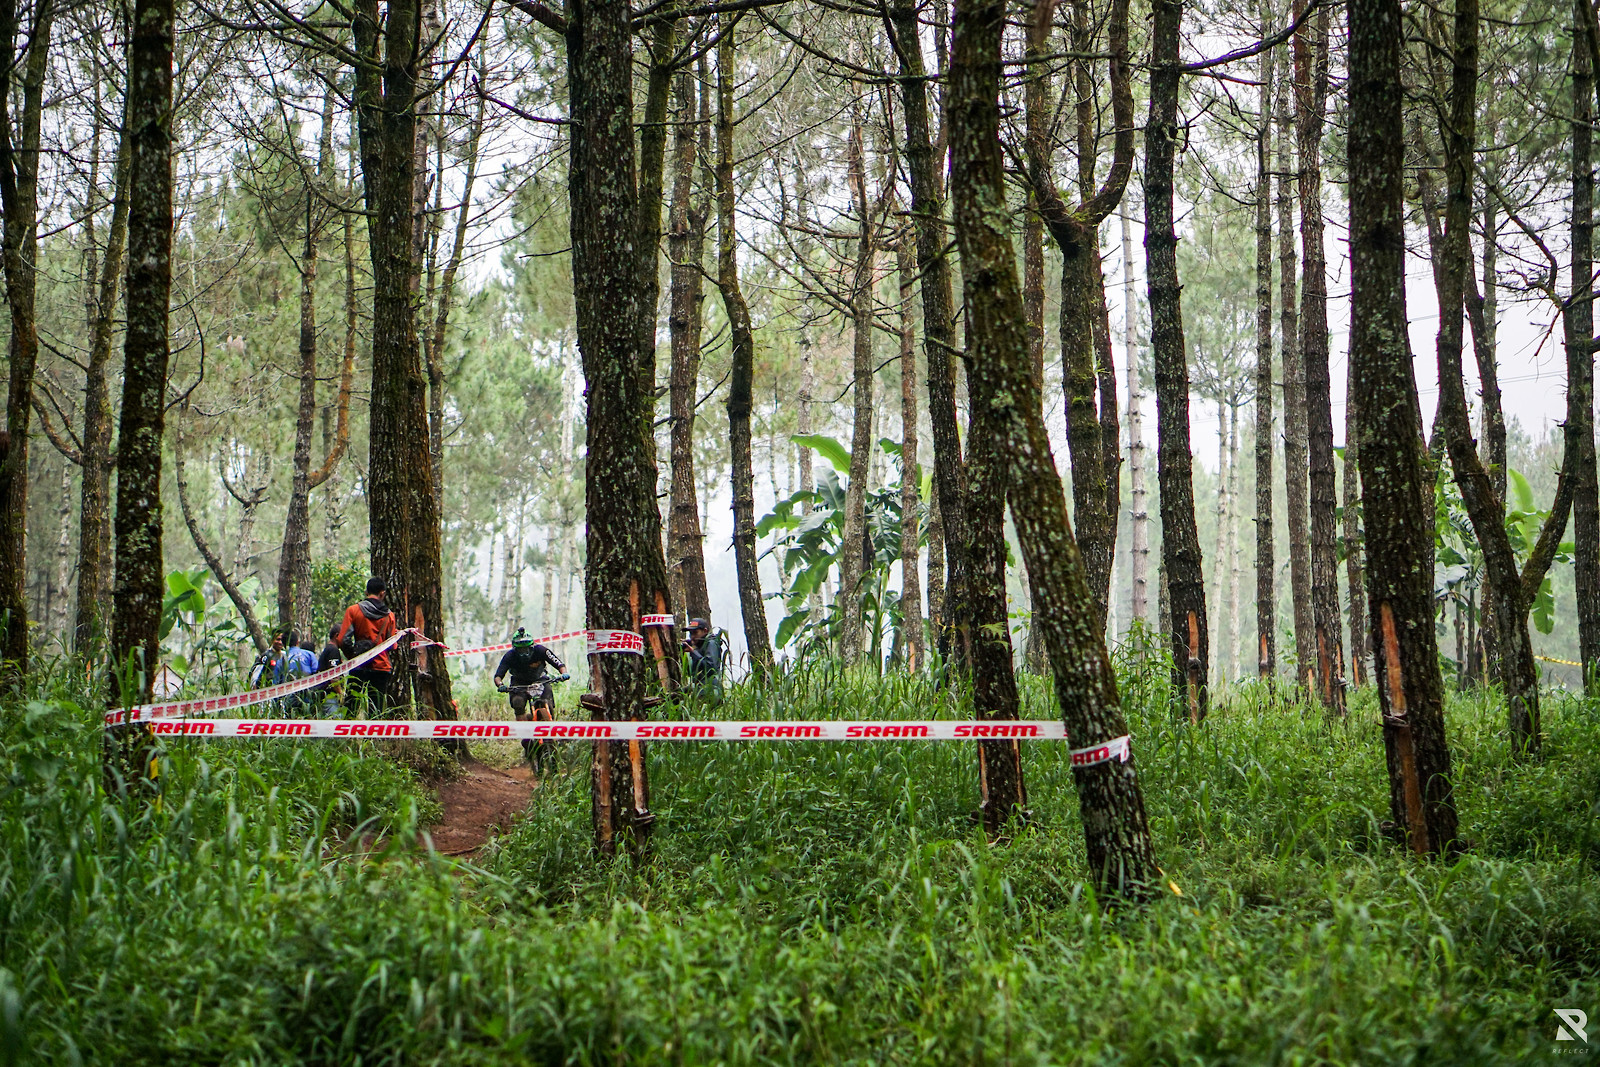 inside the raceline - RezaAkhmad - Mountain Biking Pictures - Vital MTB